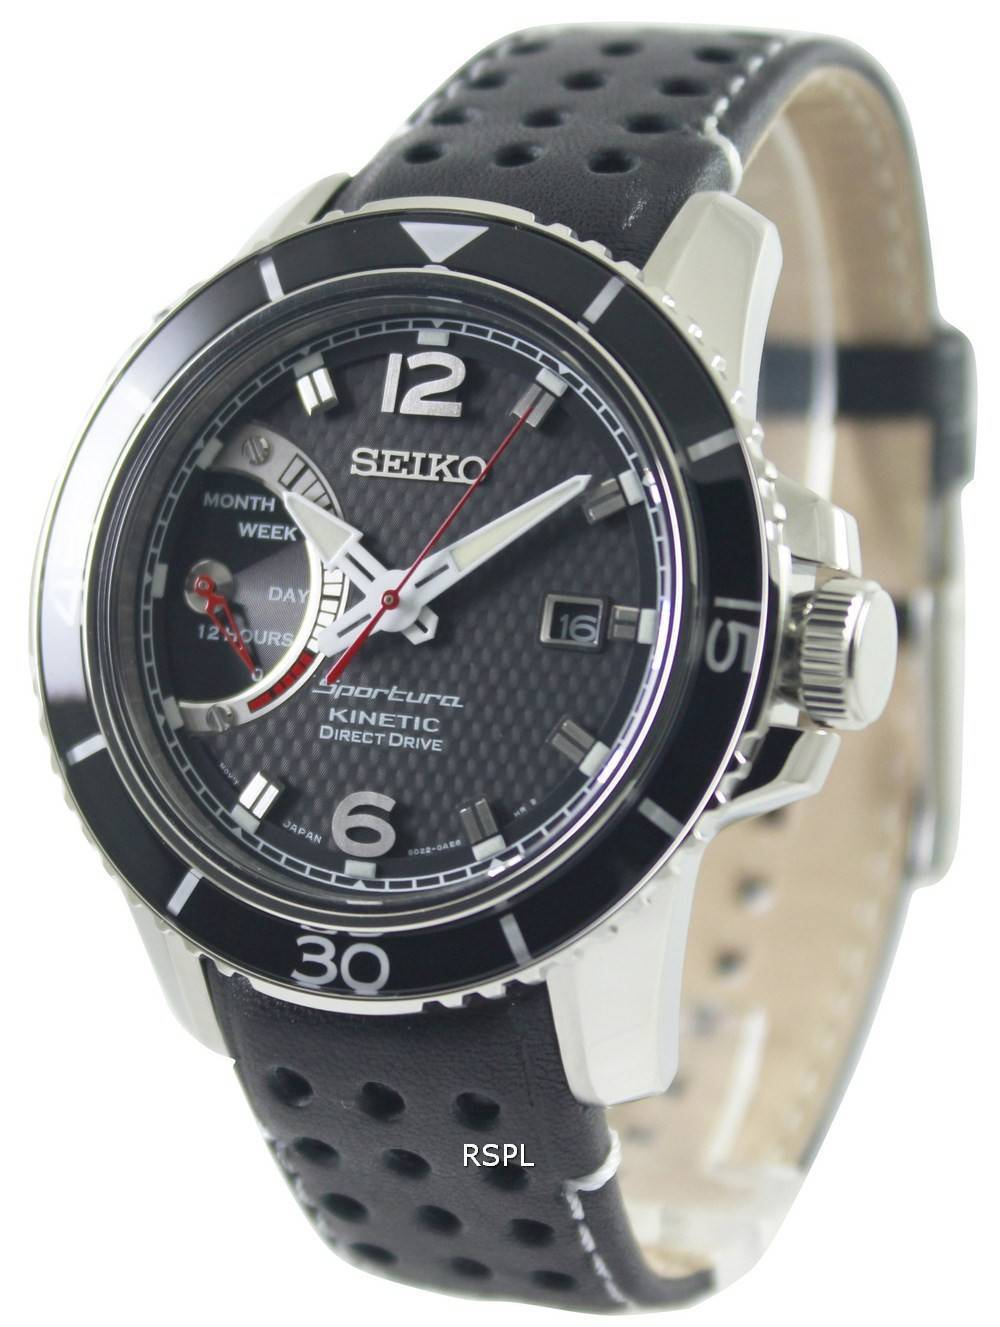 Seiko sportura kinetic direct drive srg019p2 mens watch singapore for Watches direct